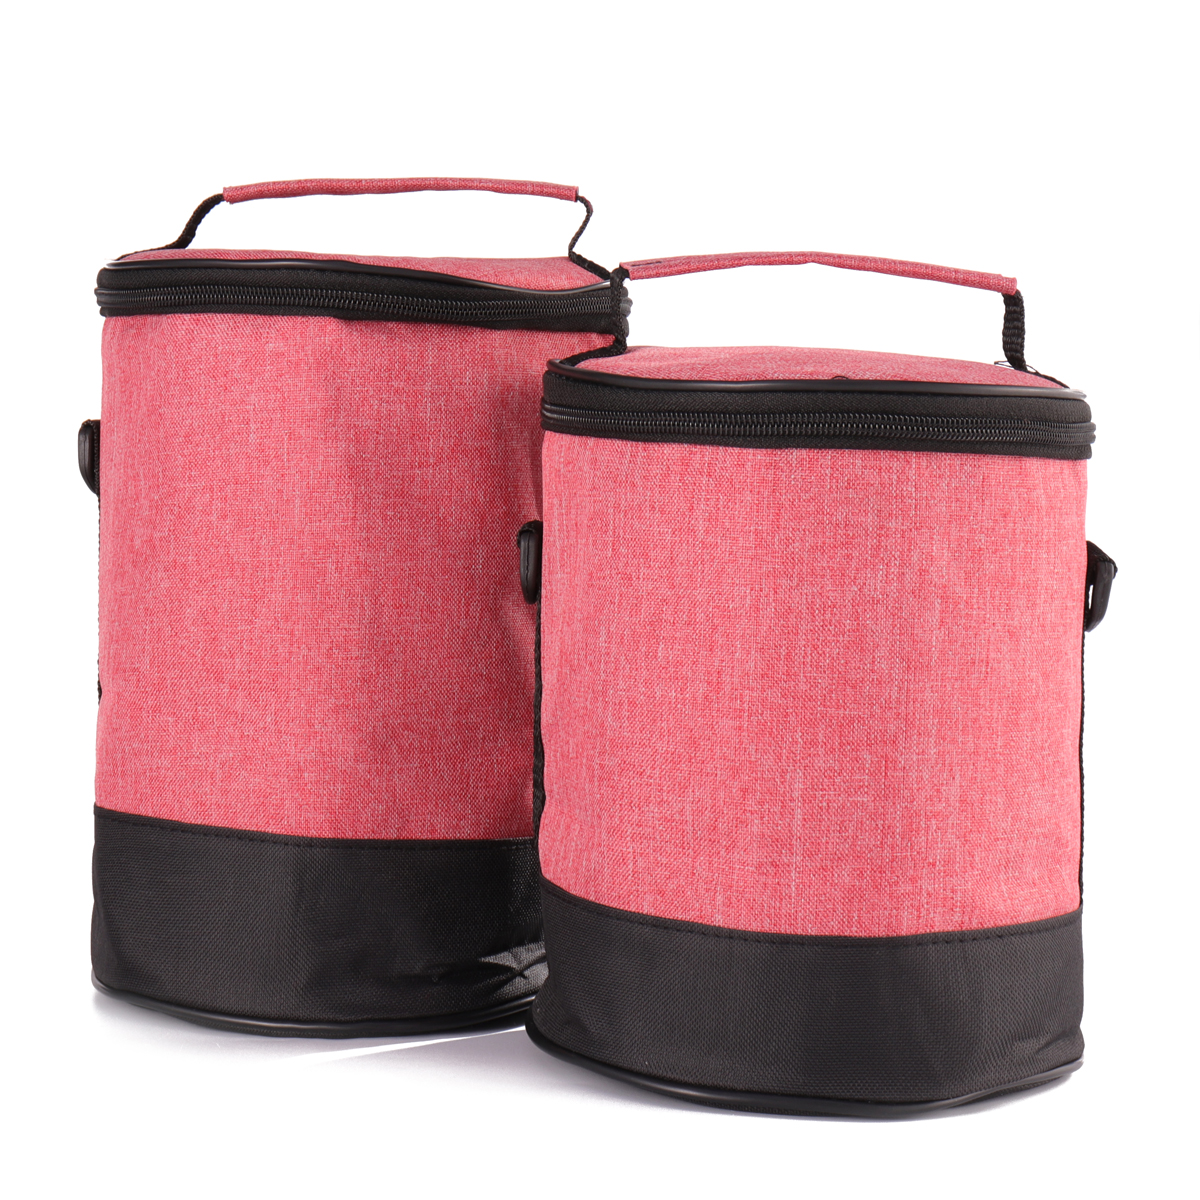 Lunch Tote Bag Cooler Insulated Handbag Zipper Storage Containers Lunch Box Shoulder Bag